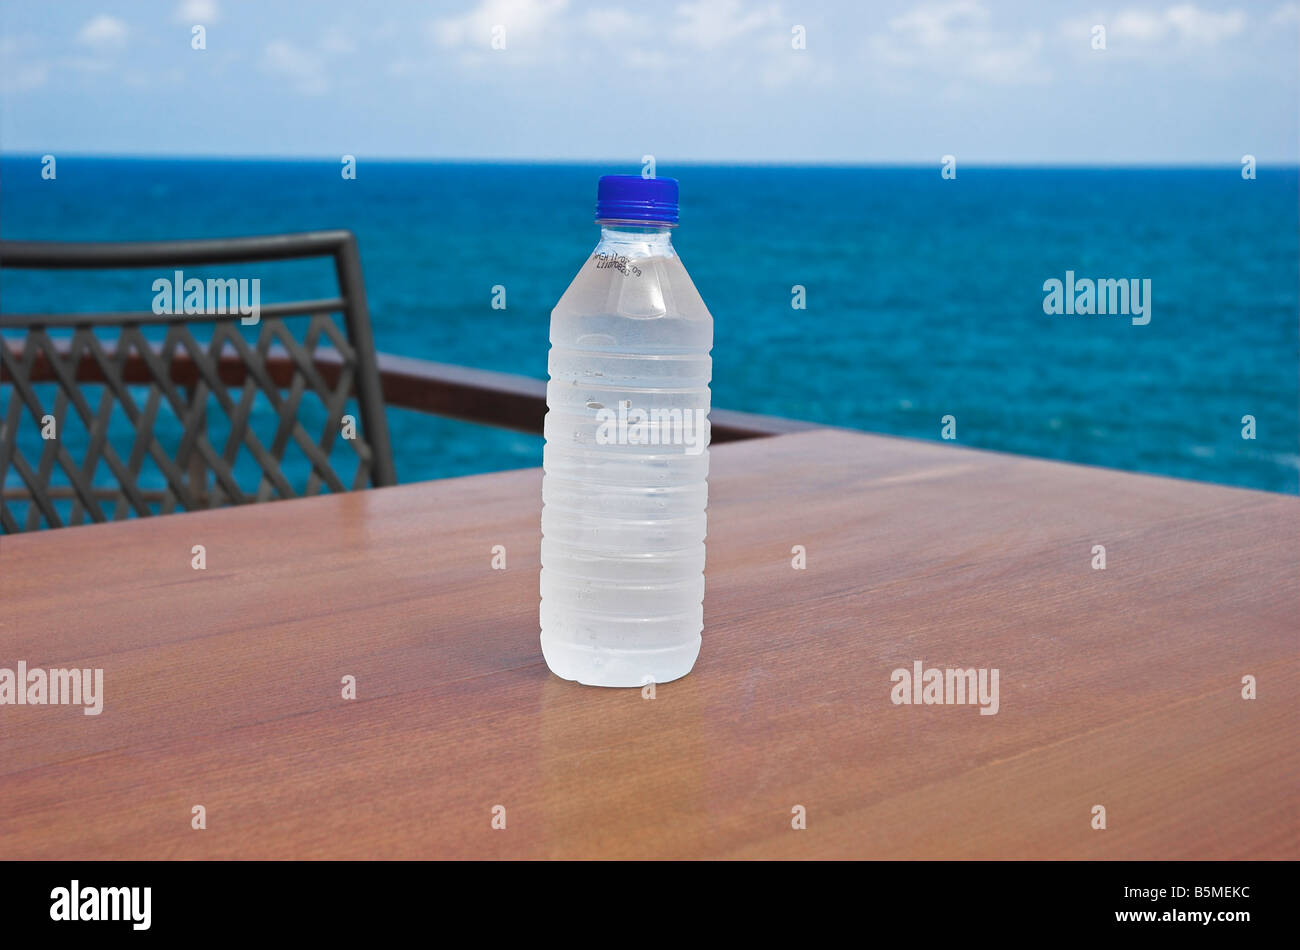 Bottle of water on table - Stock Image